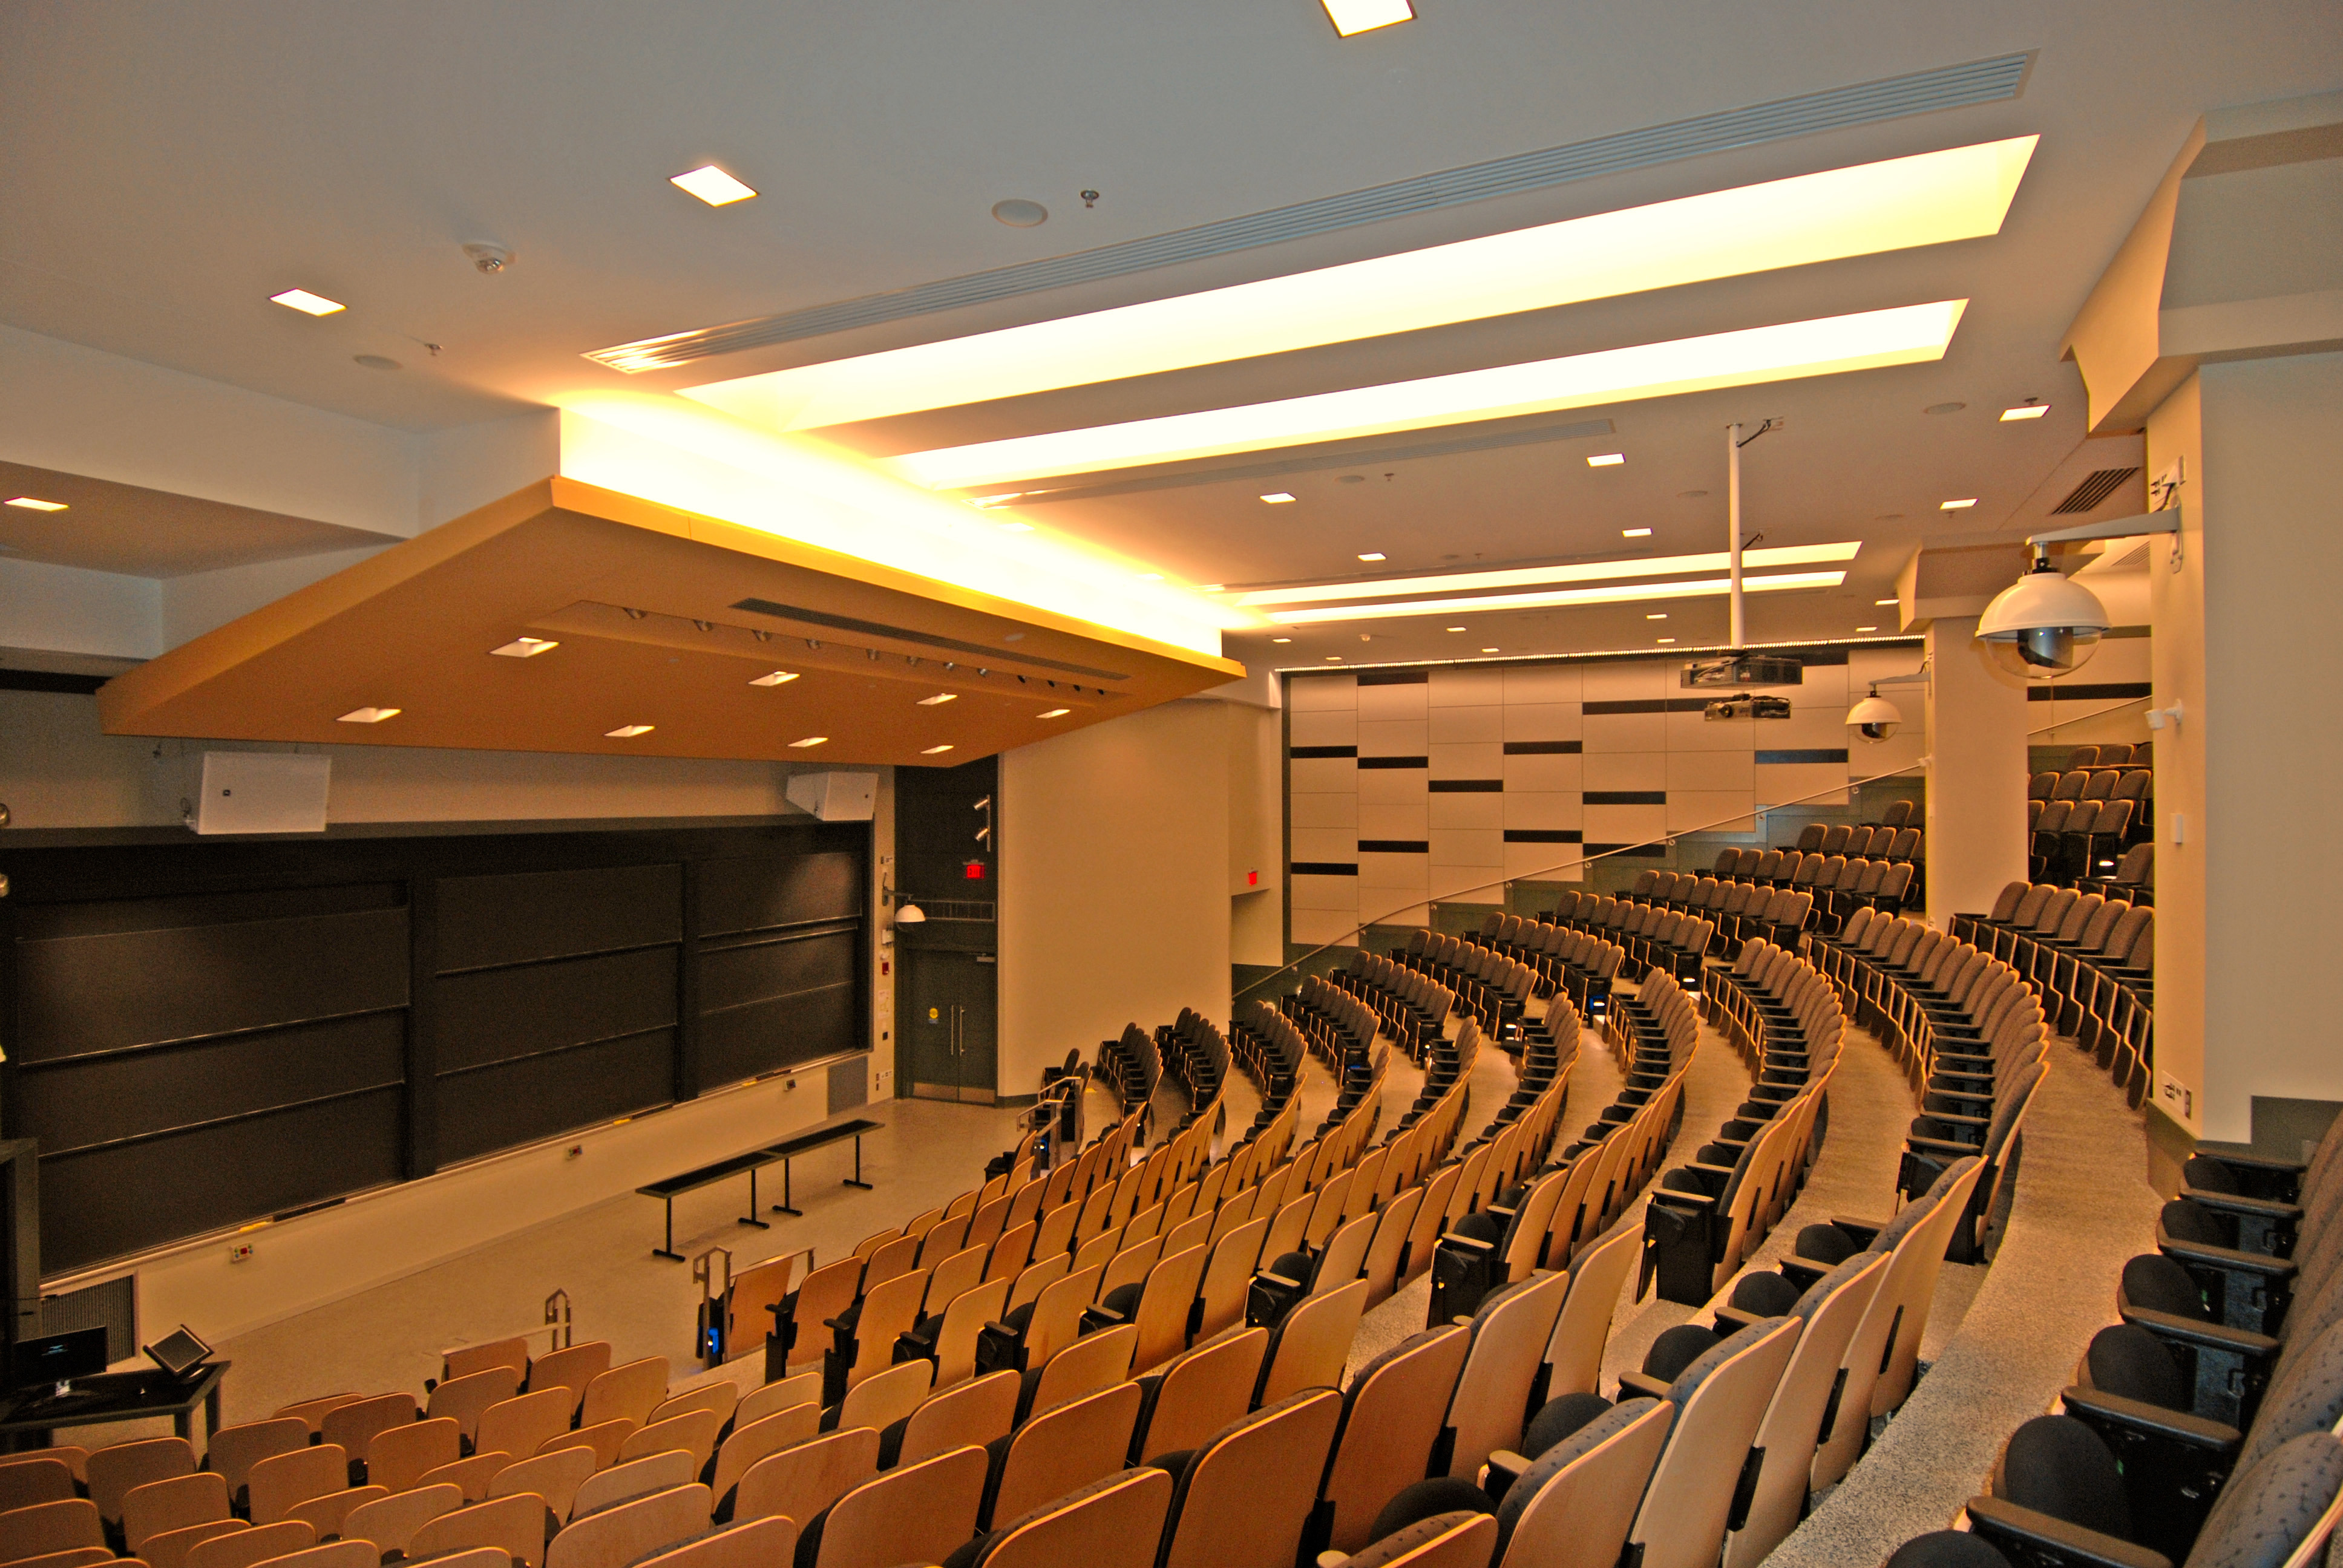 acoustic treatment in classroom space